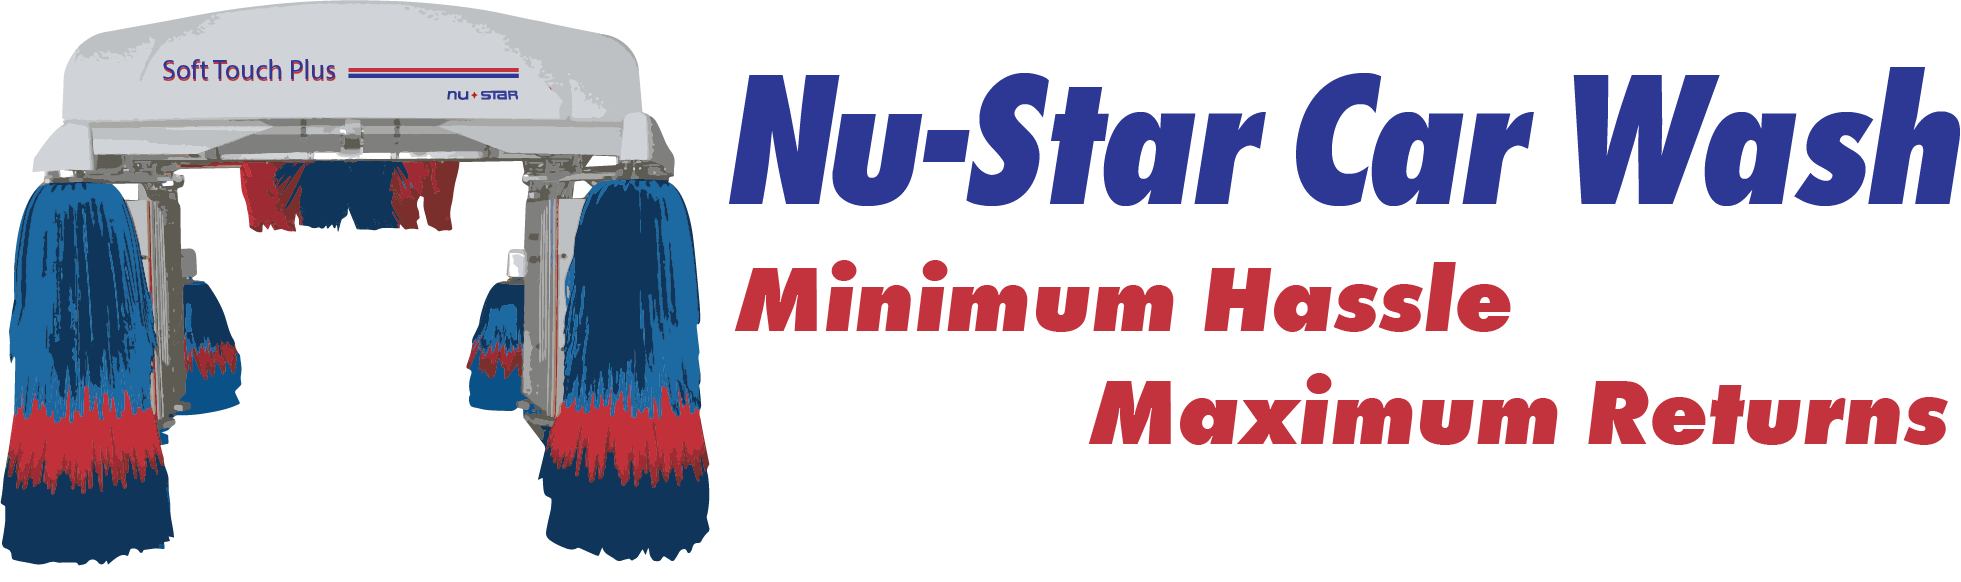 Nustar Inc Star Wiring Diagram Elec Car For Over 50 Years Nu Has Been Developing Manufacturing And Selling The Best Wash Equipment Available Soft Touch Or Touchless